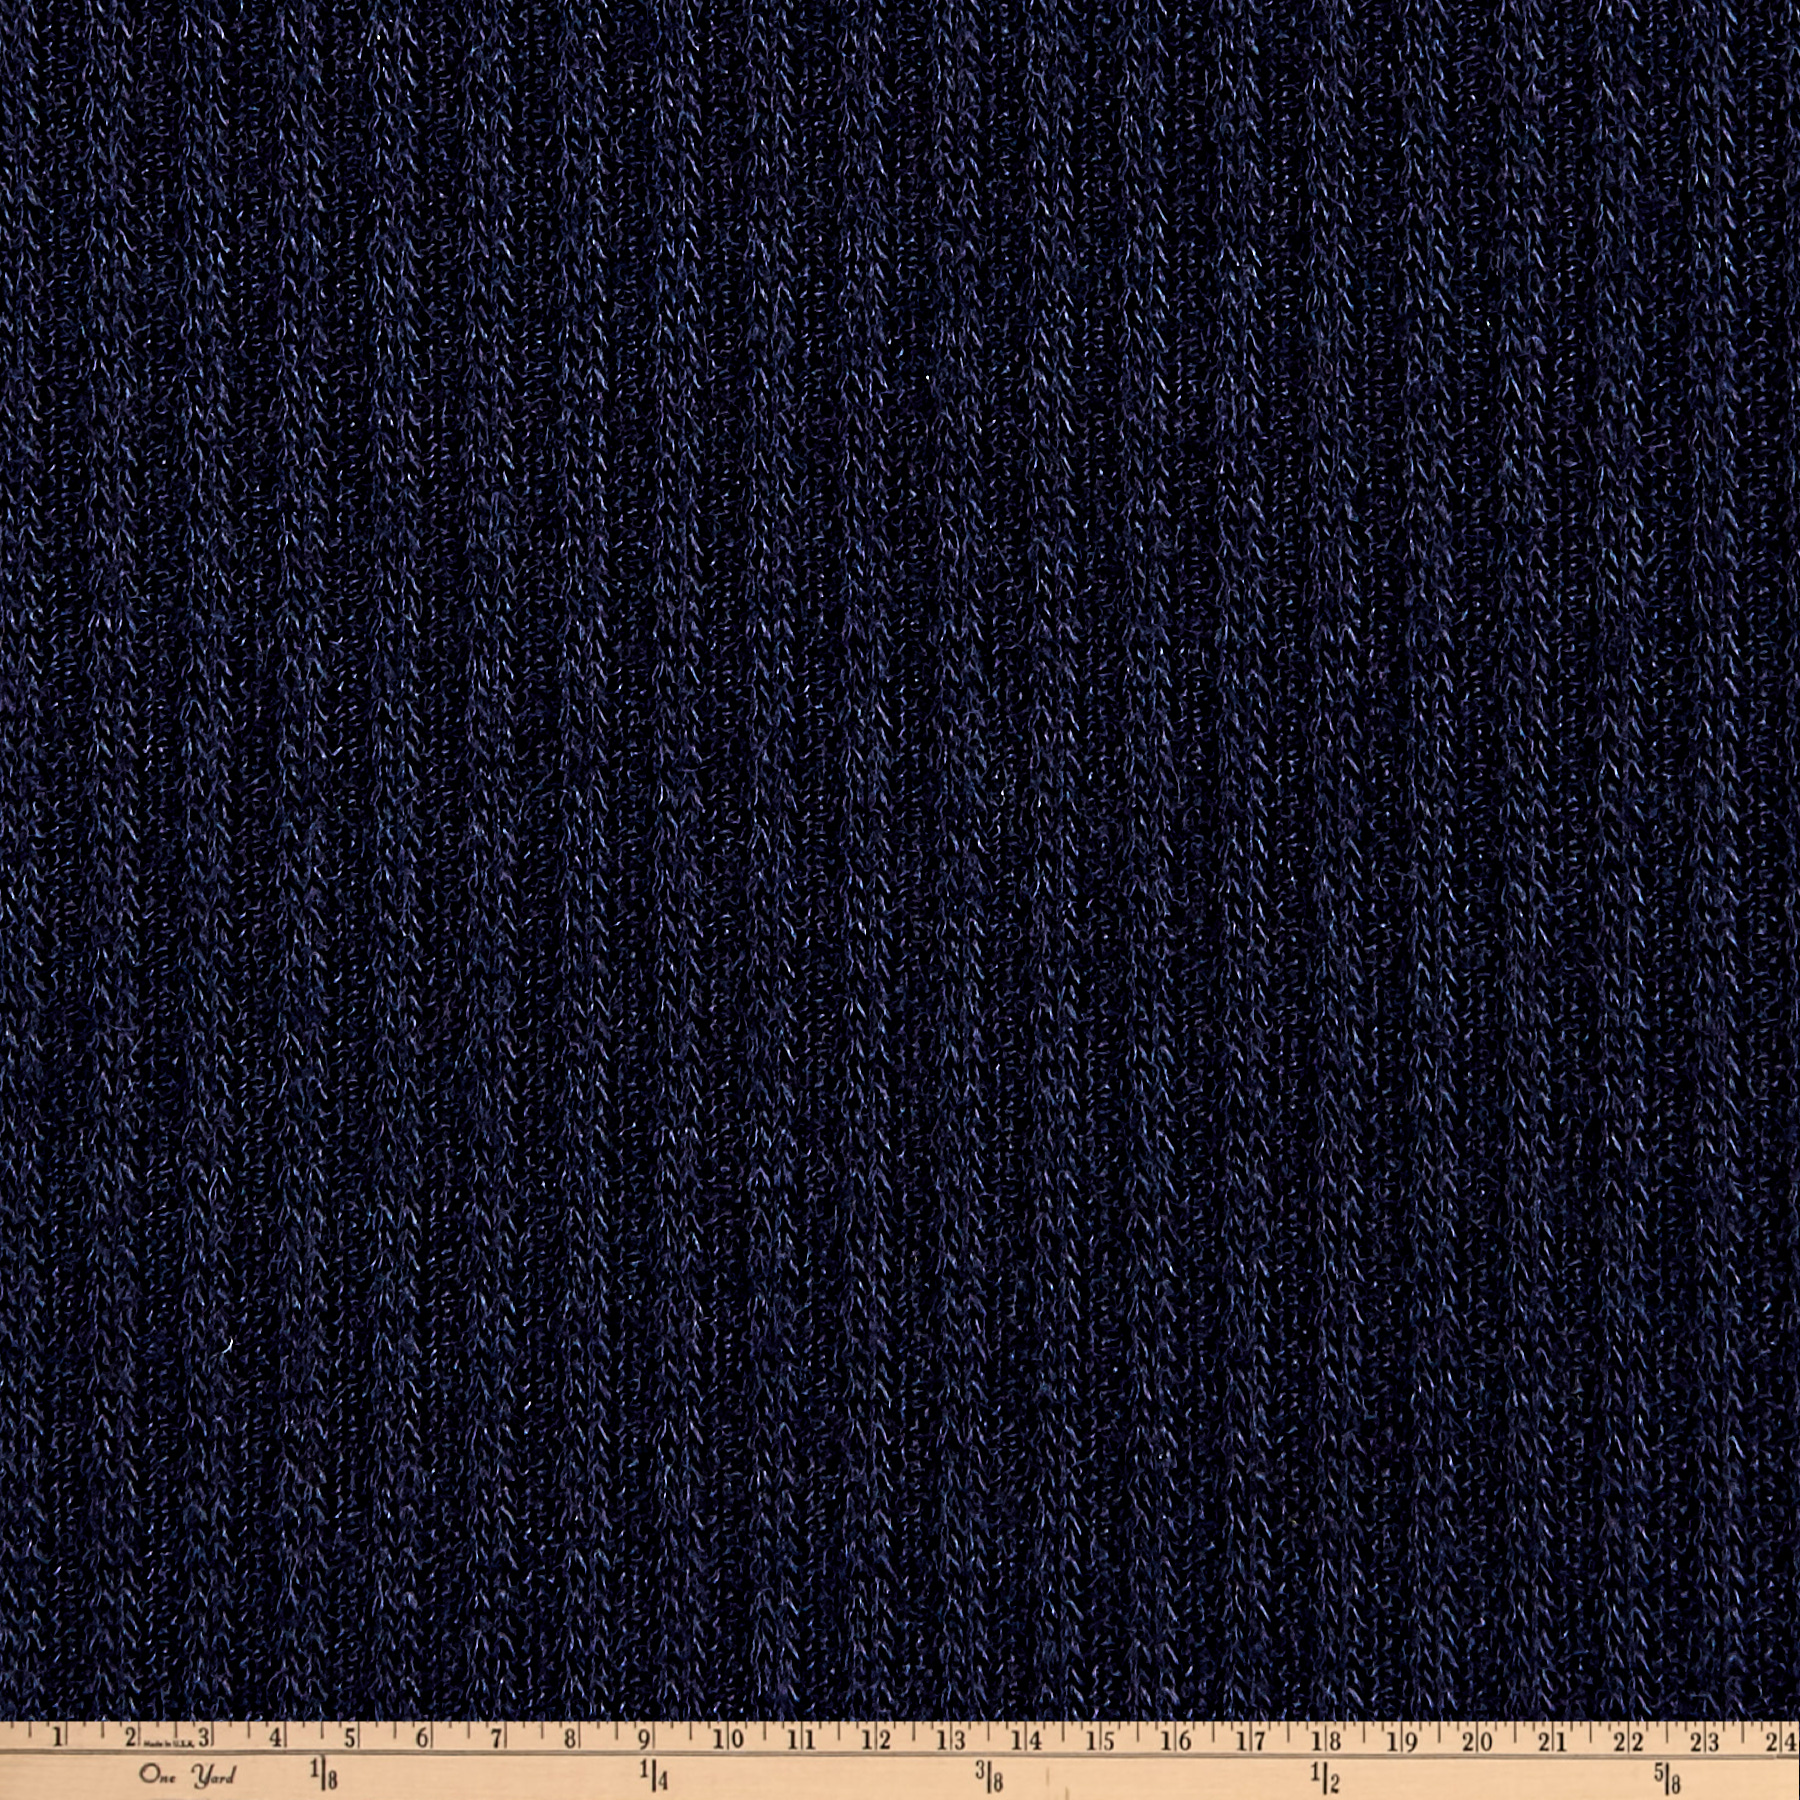 2X1 Rib Knit Navy Fabric 0451287